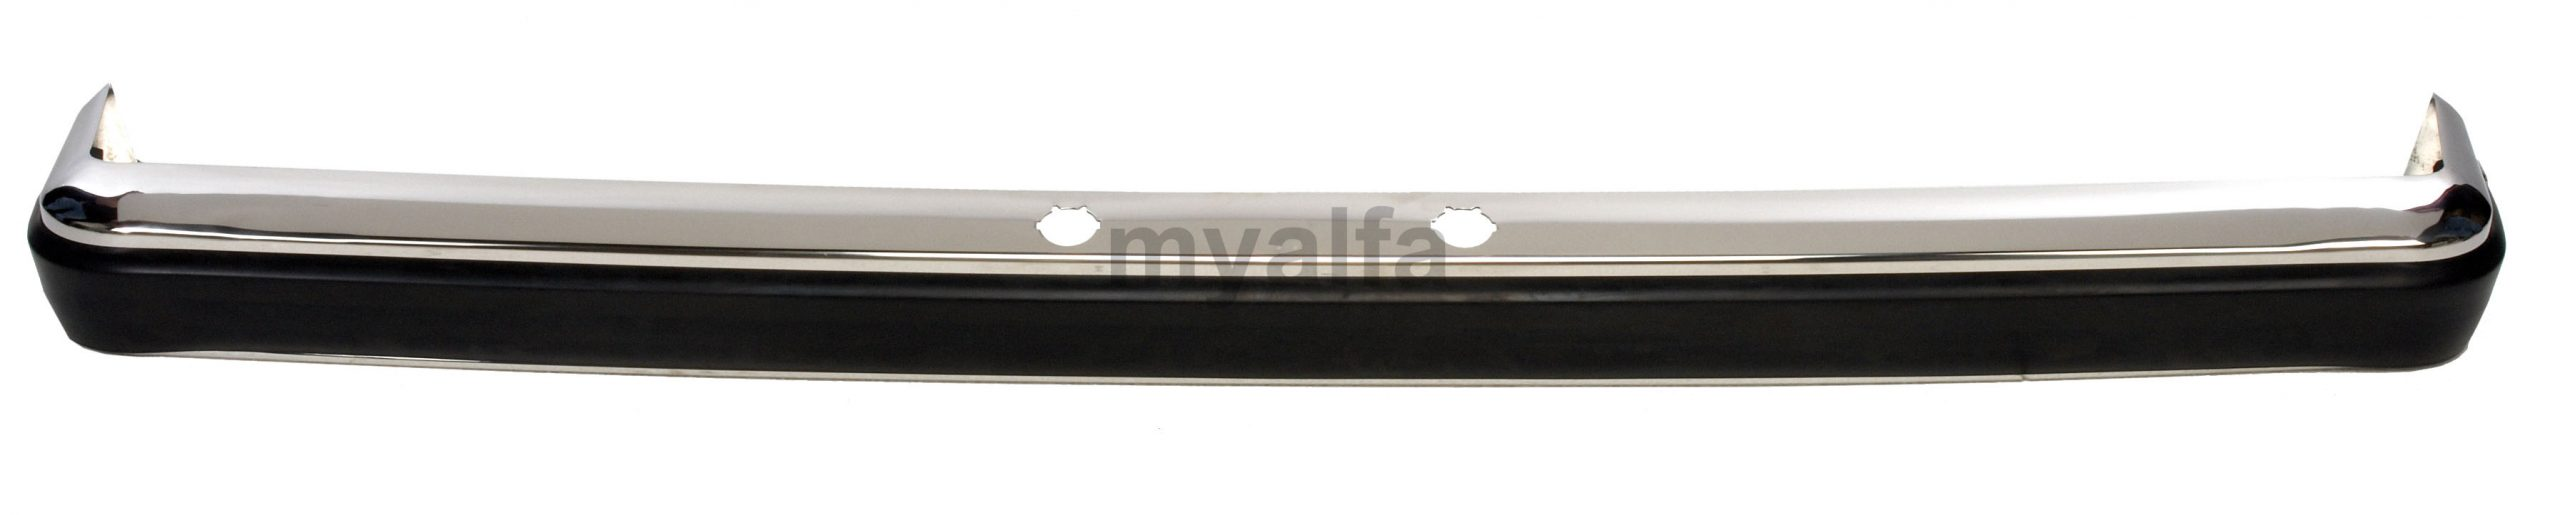 rear bumper Spider 1970-82 for 105/115, Spider, Body parts, Chrome Parts, Rear